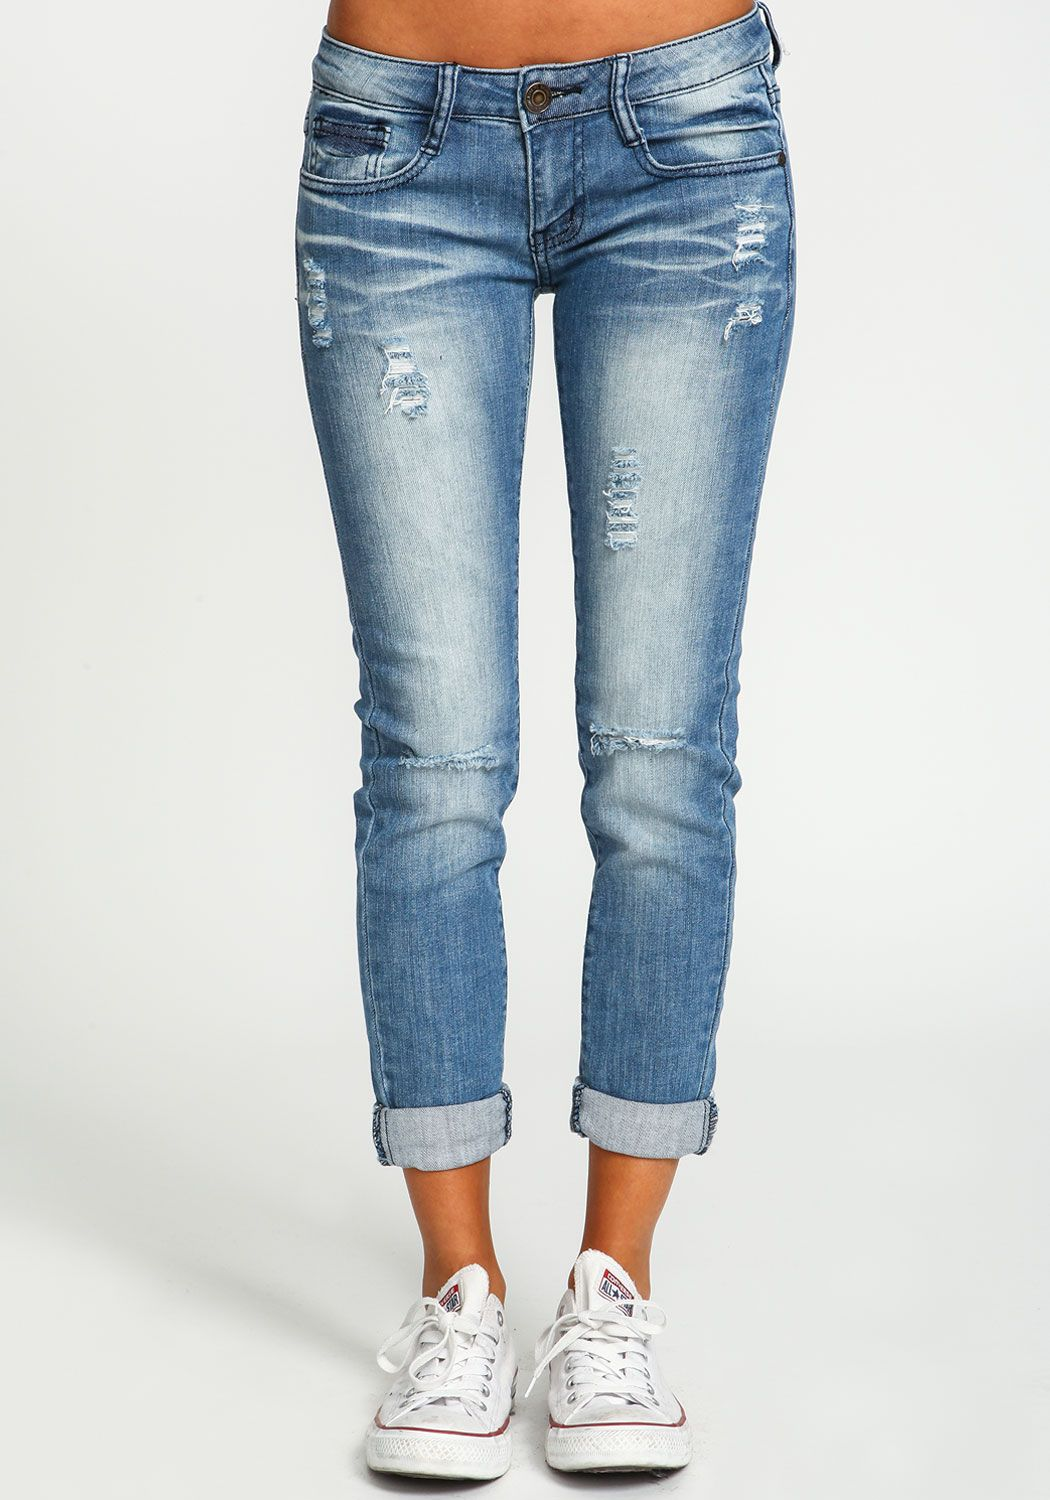 ba9969668a3 Distressed Cuffed Skinny Jeans - Love Culture